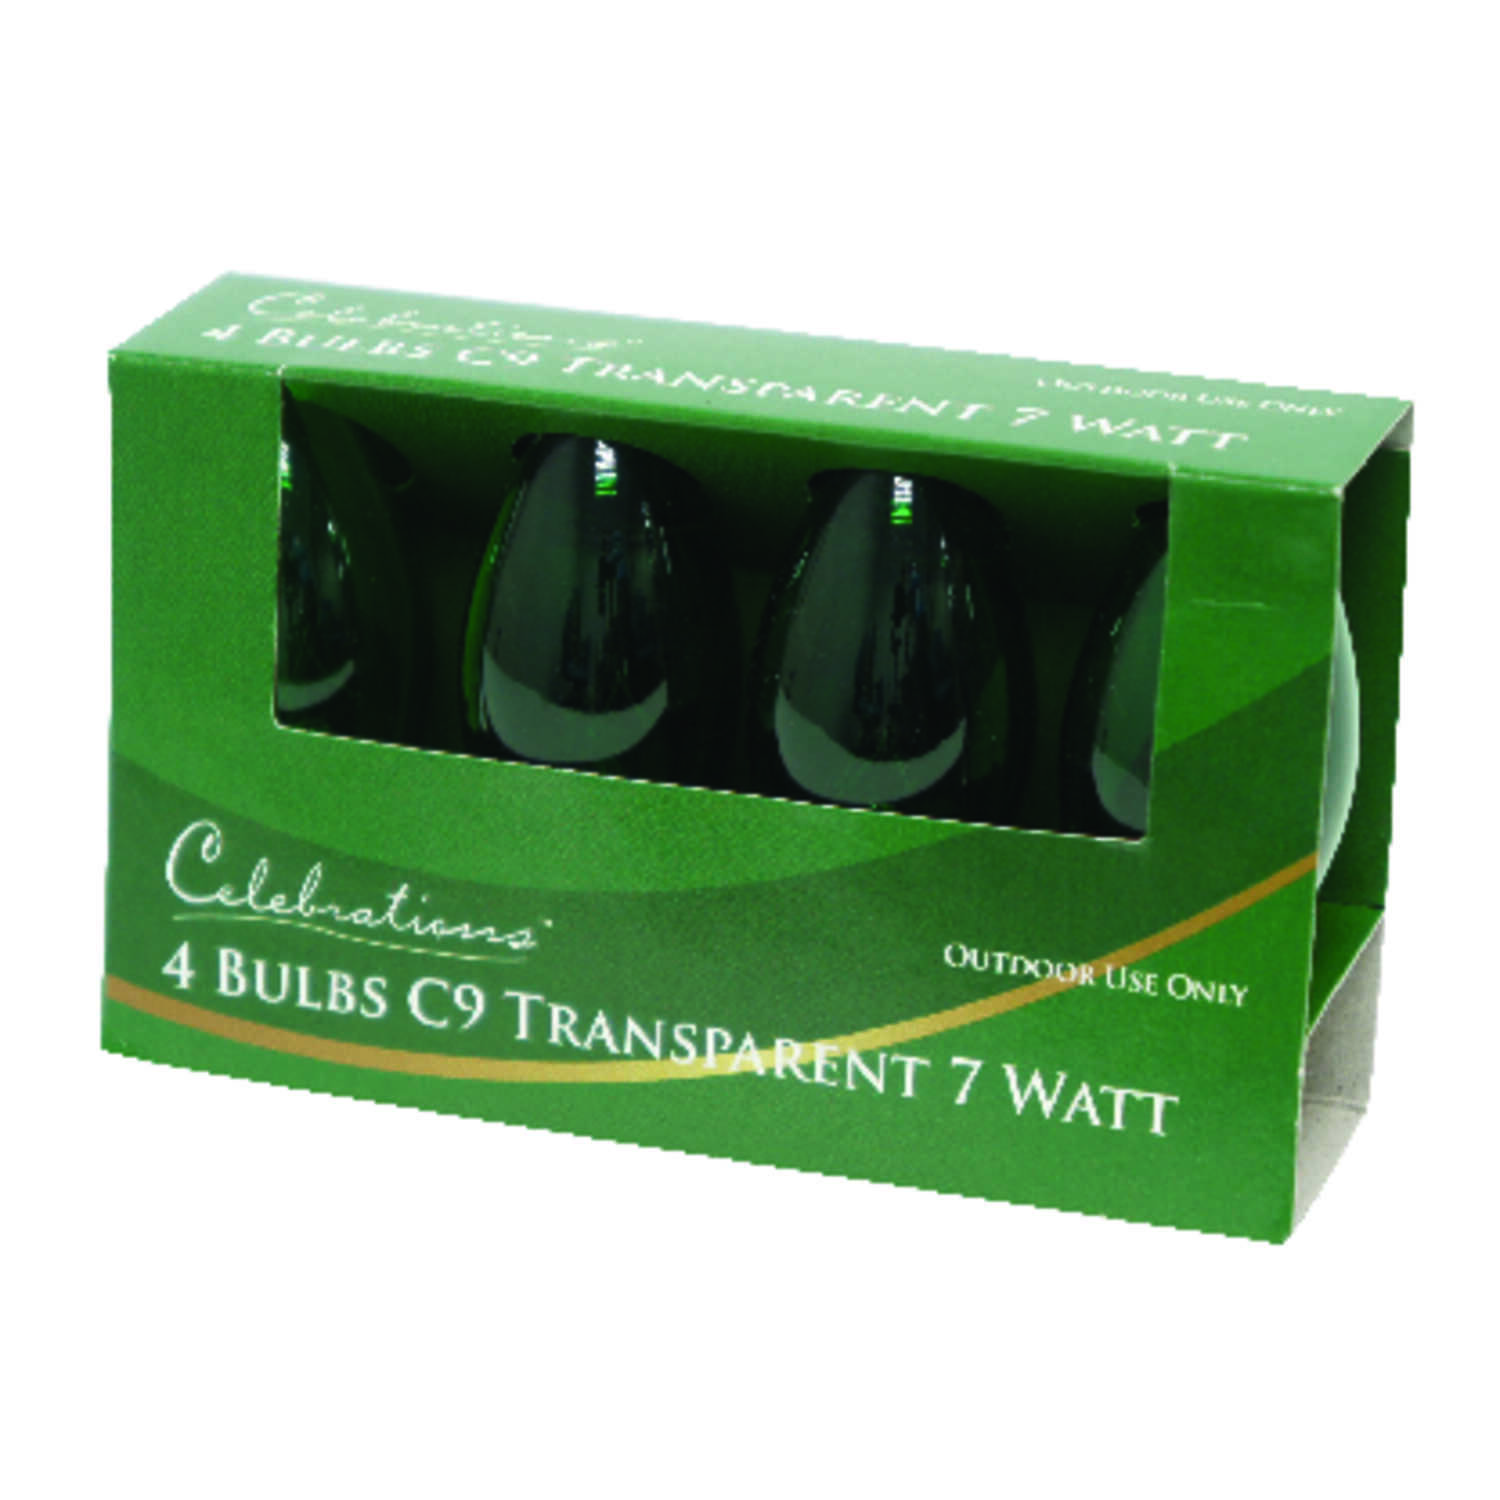 Celebrations  Incandescent  Transparent C9  Replacement Bulb  Green  4 pk